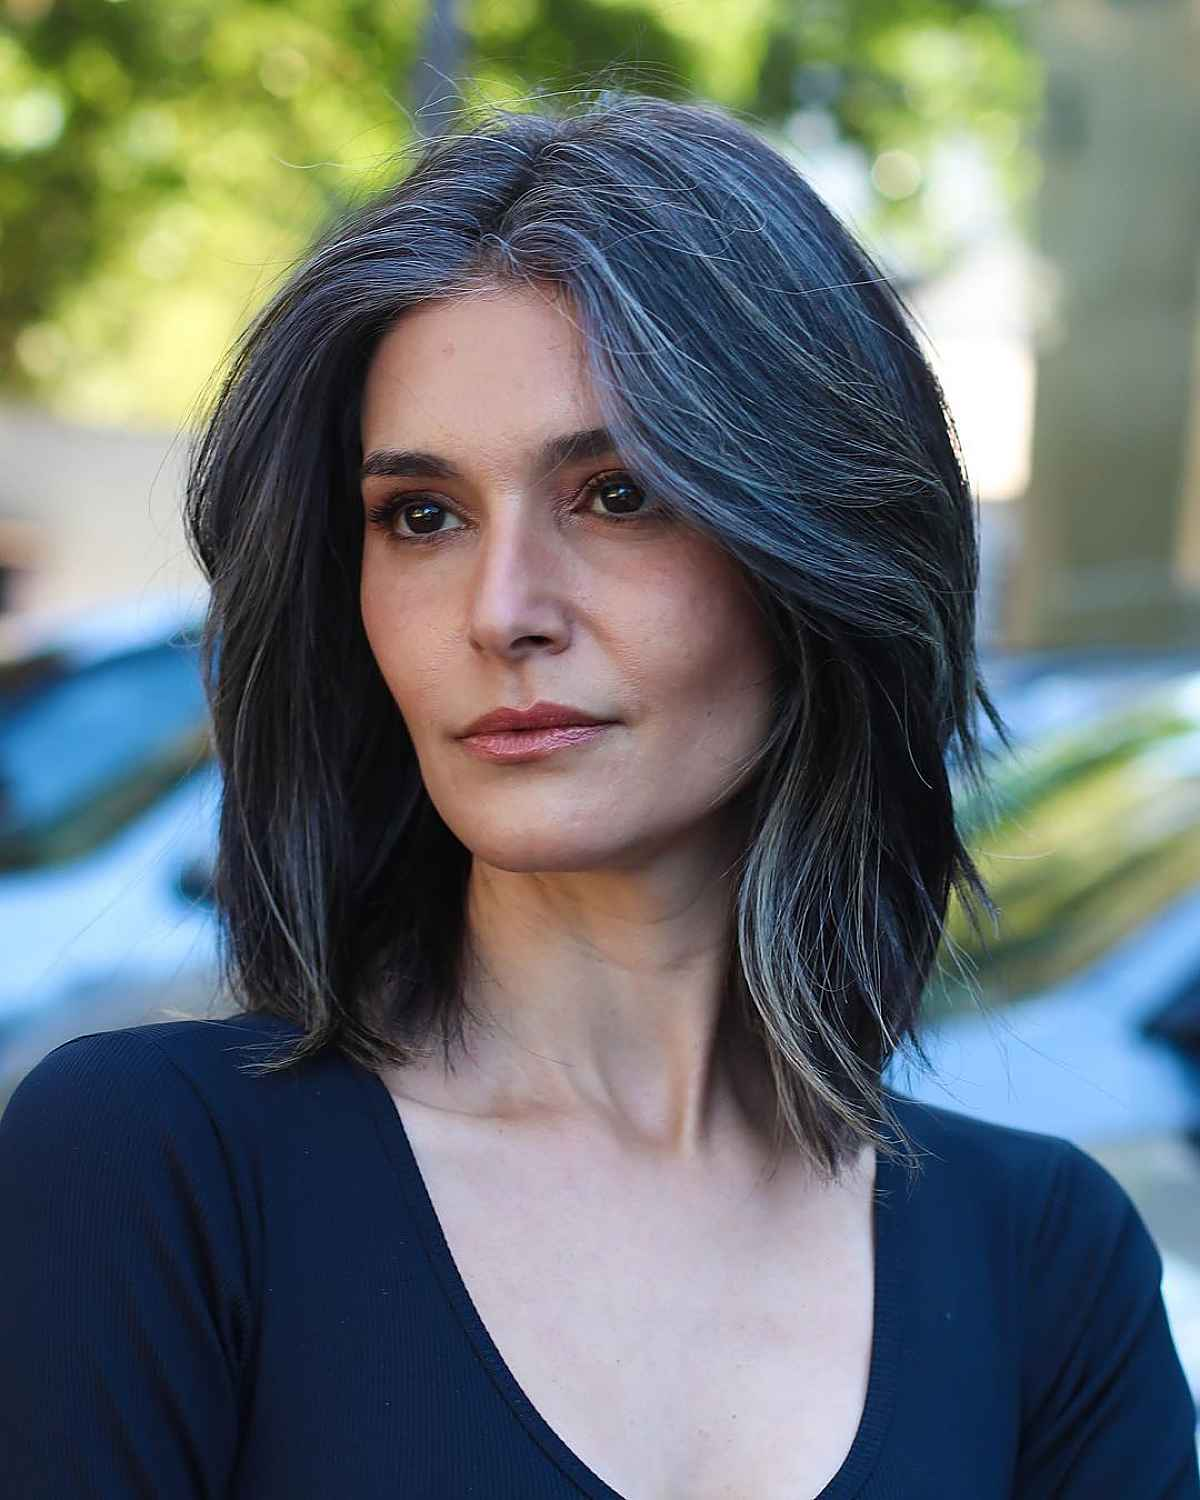 Straight Layered Long Bob for Women Over 40